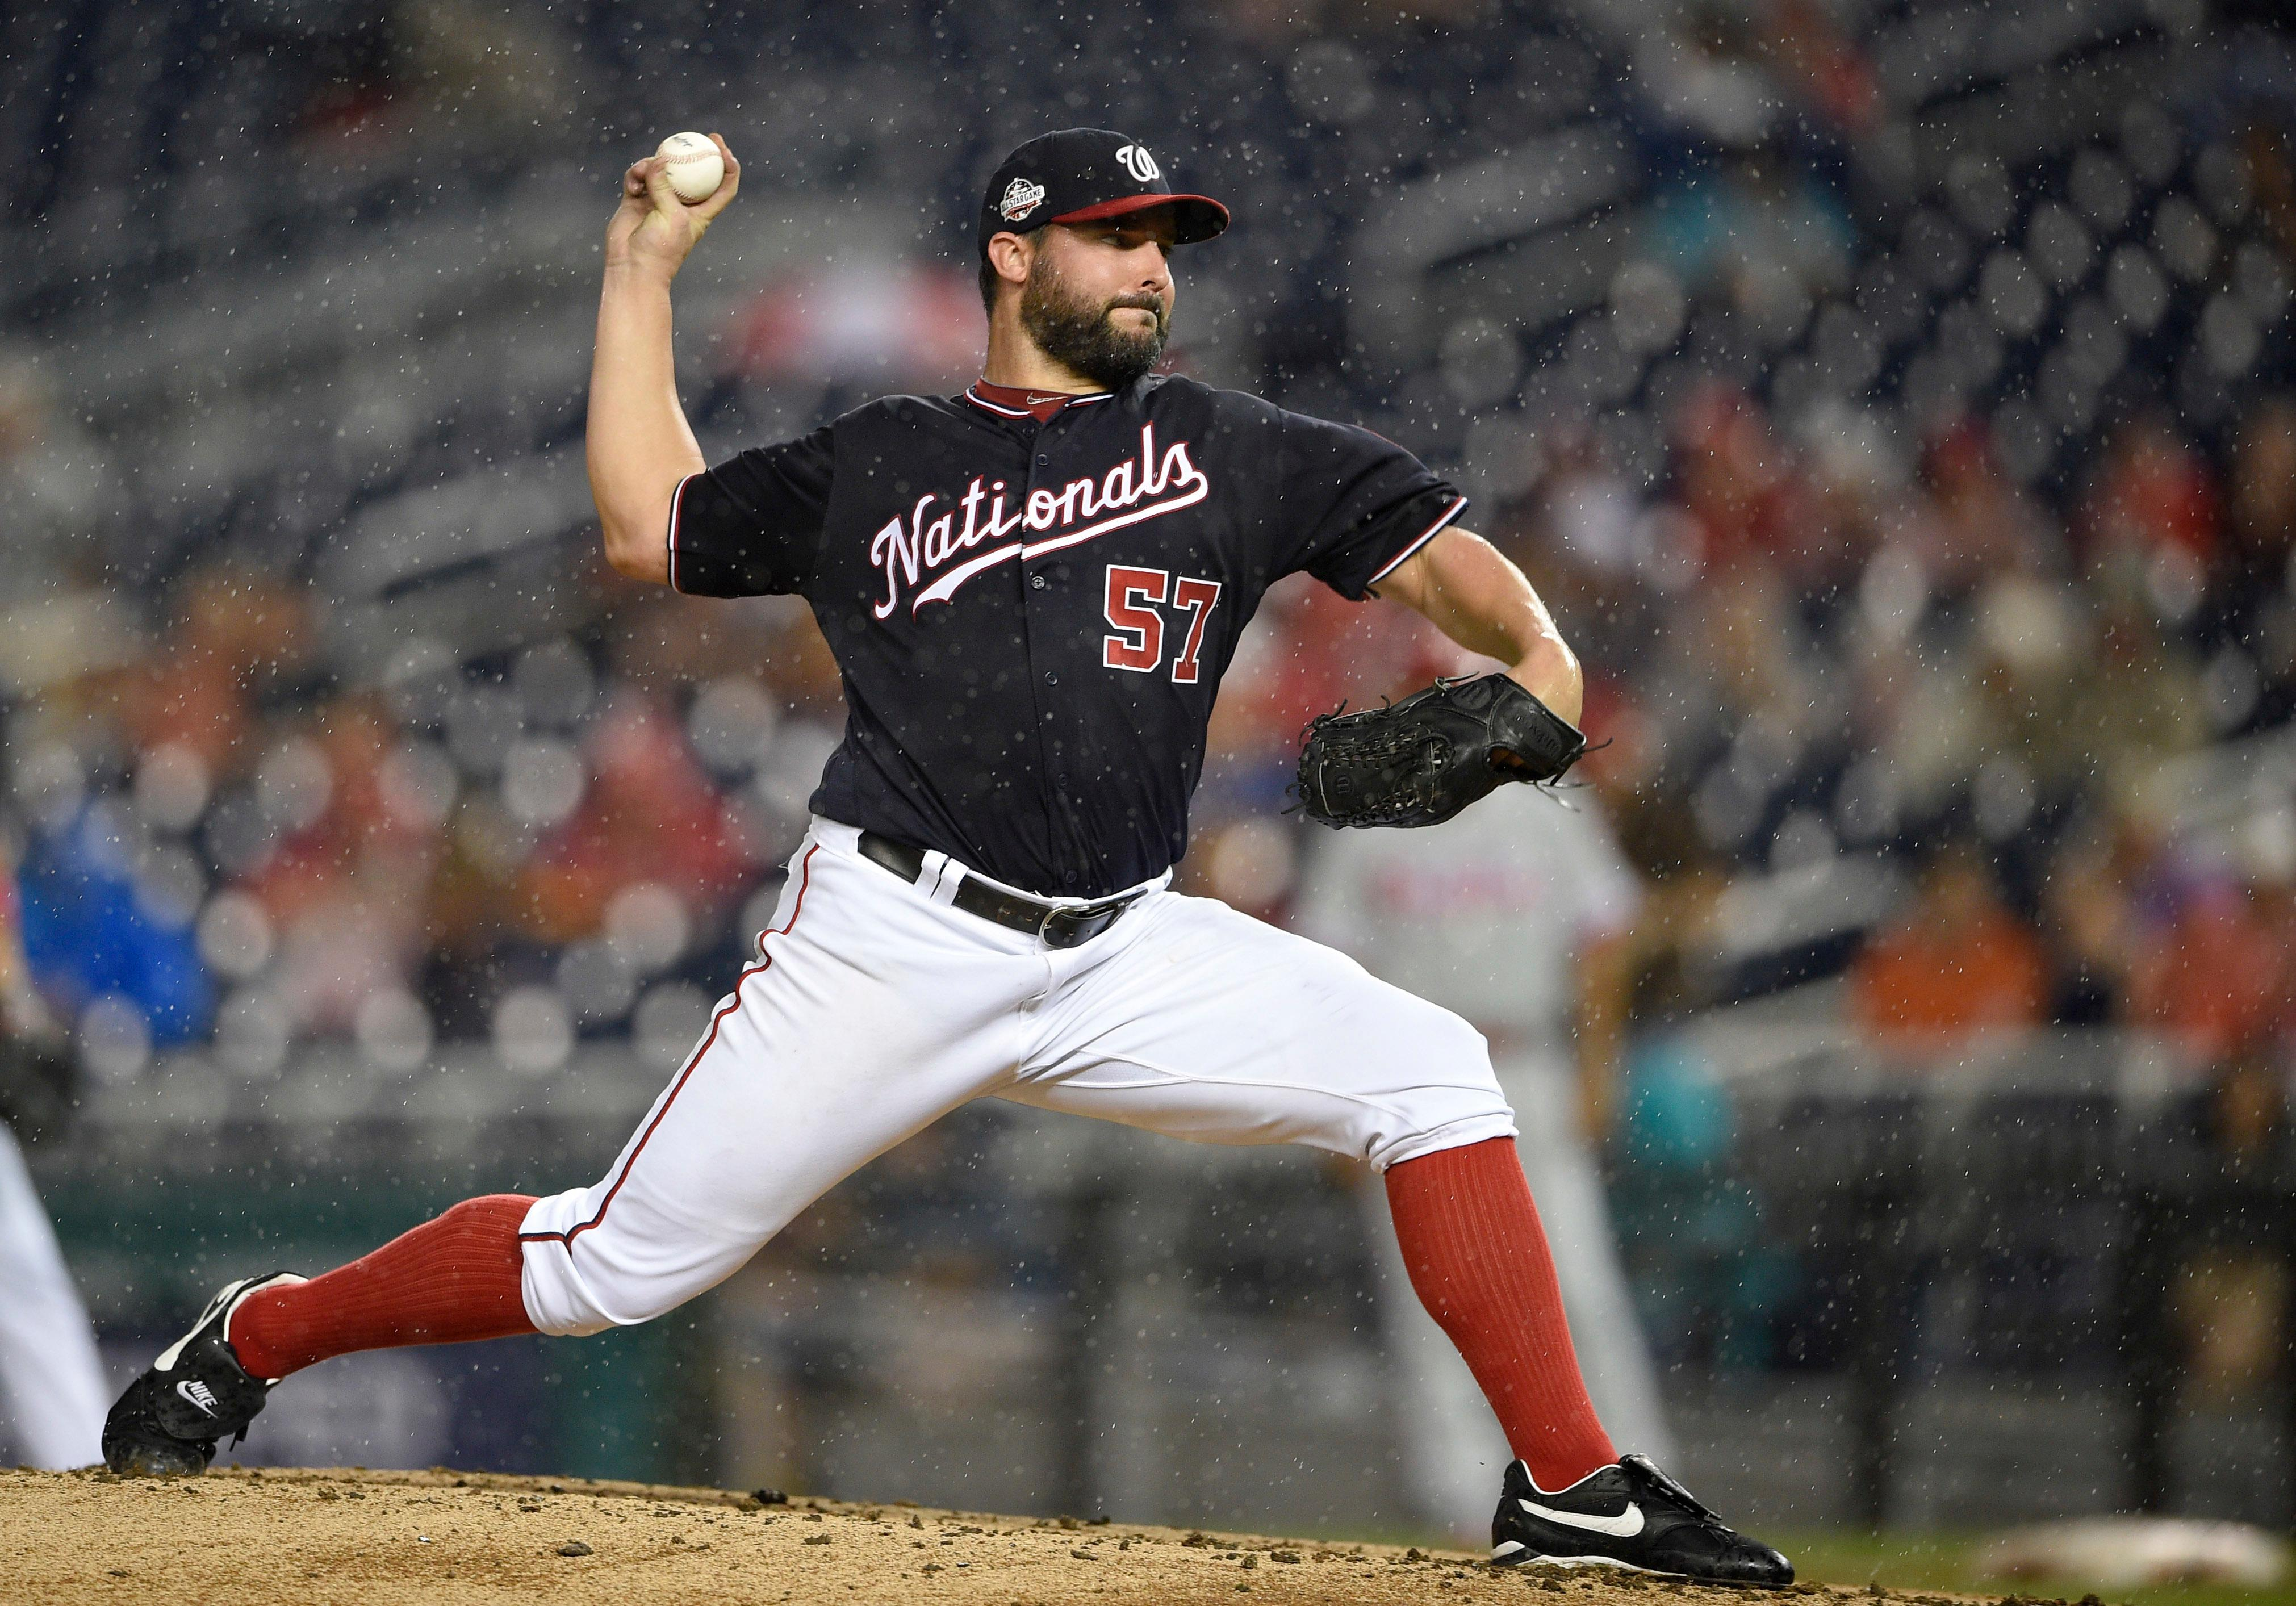 Washington Nationals starting pitcher Tanner Roark delivers a pitch during the third inning of a baseball game against the Philadelphia Phillies, Tuesday, Aug. 21, 2018, in Washington. (AP Photo/Nick Wass)